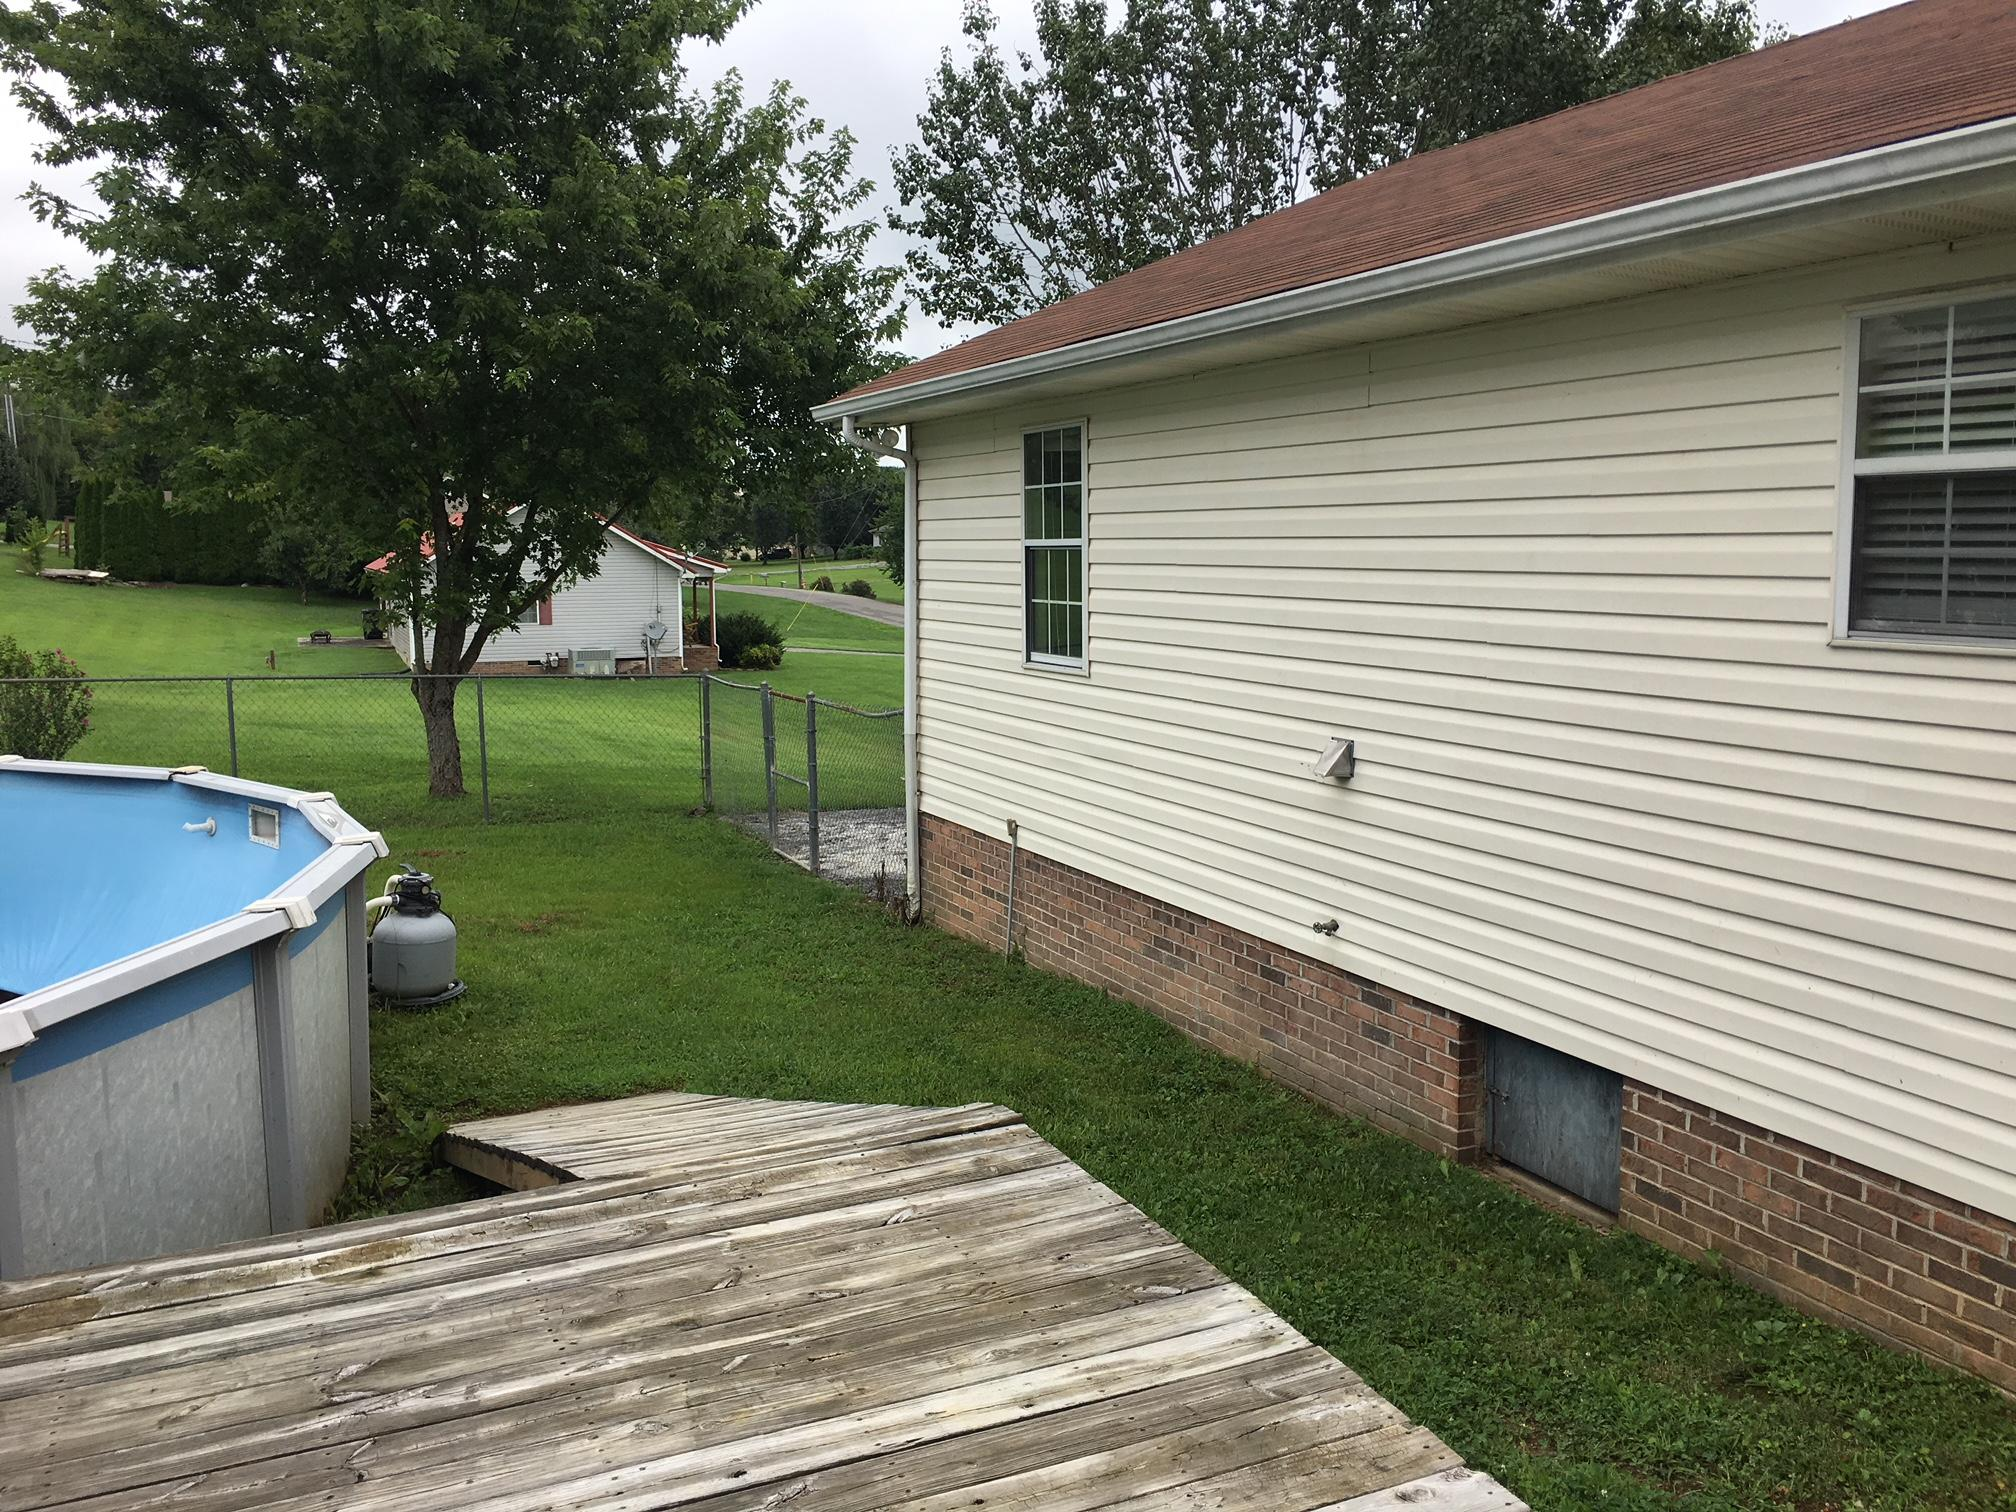 132 Guthrie Rd, Athens, TN 37303